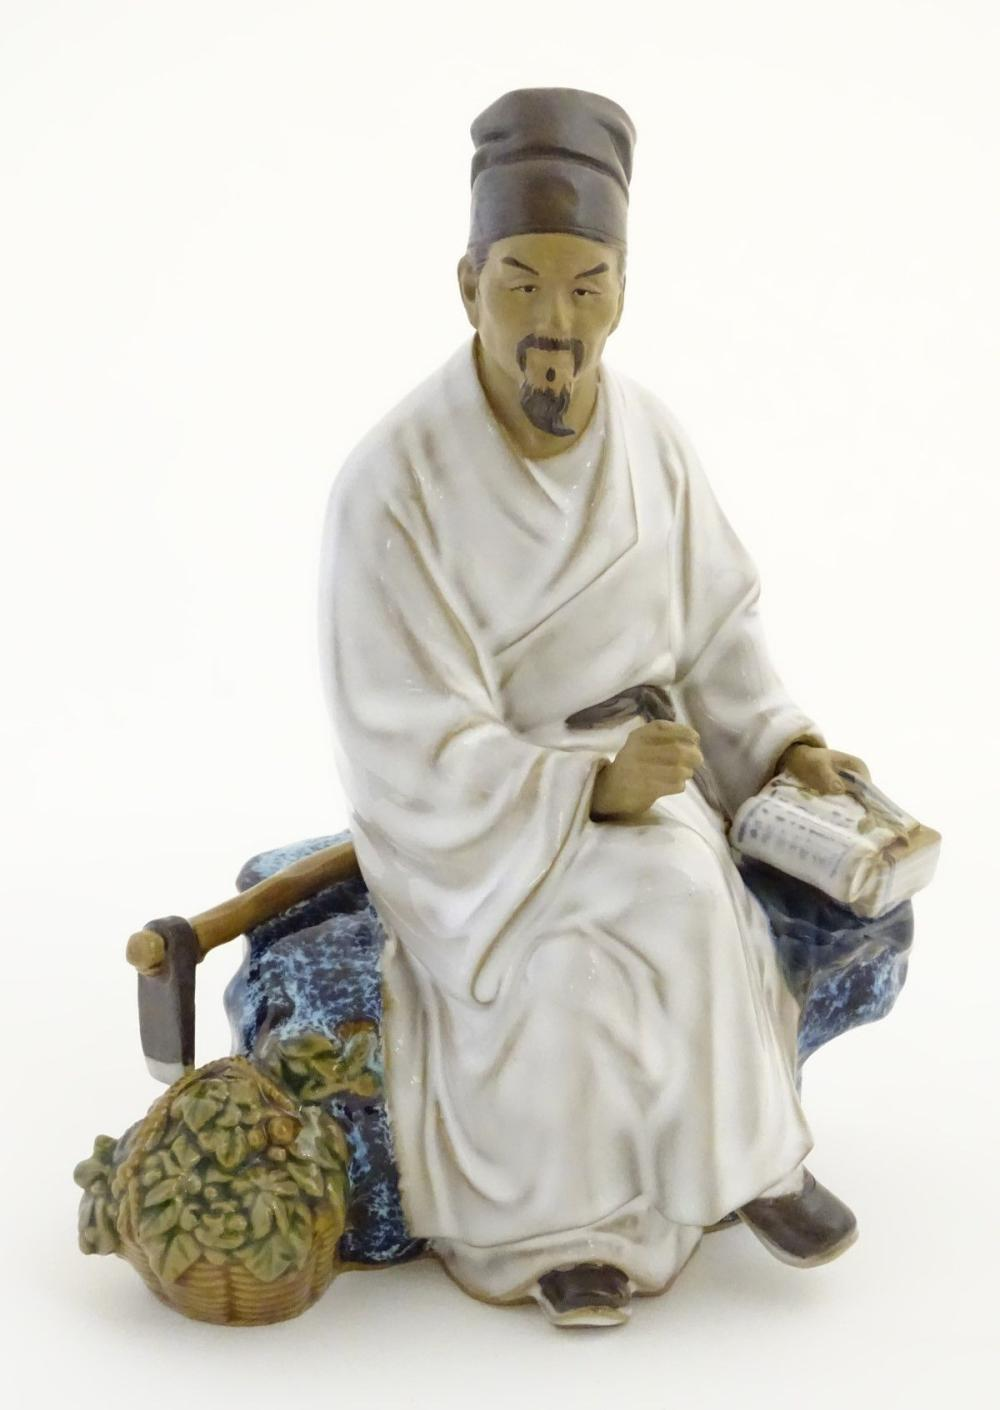 A Chinese partially glazed ceramic mudman figurine depicting a scholar/scribe, thought to be Chung K